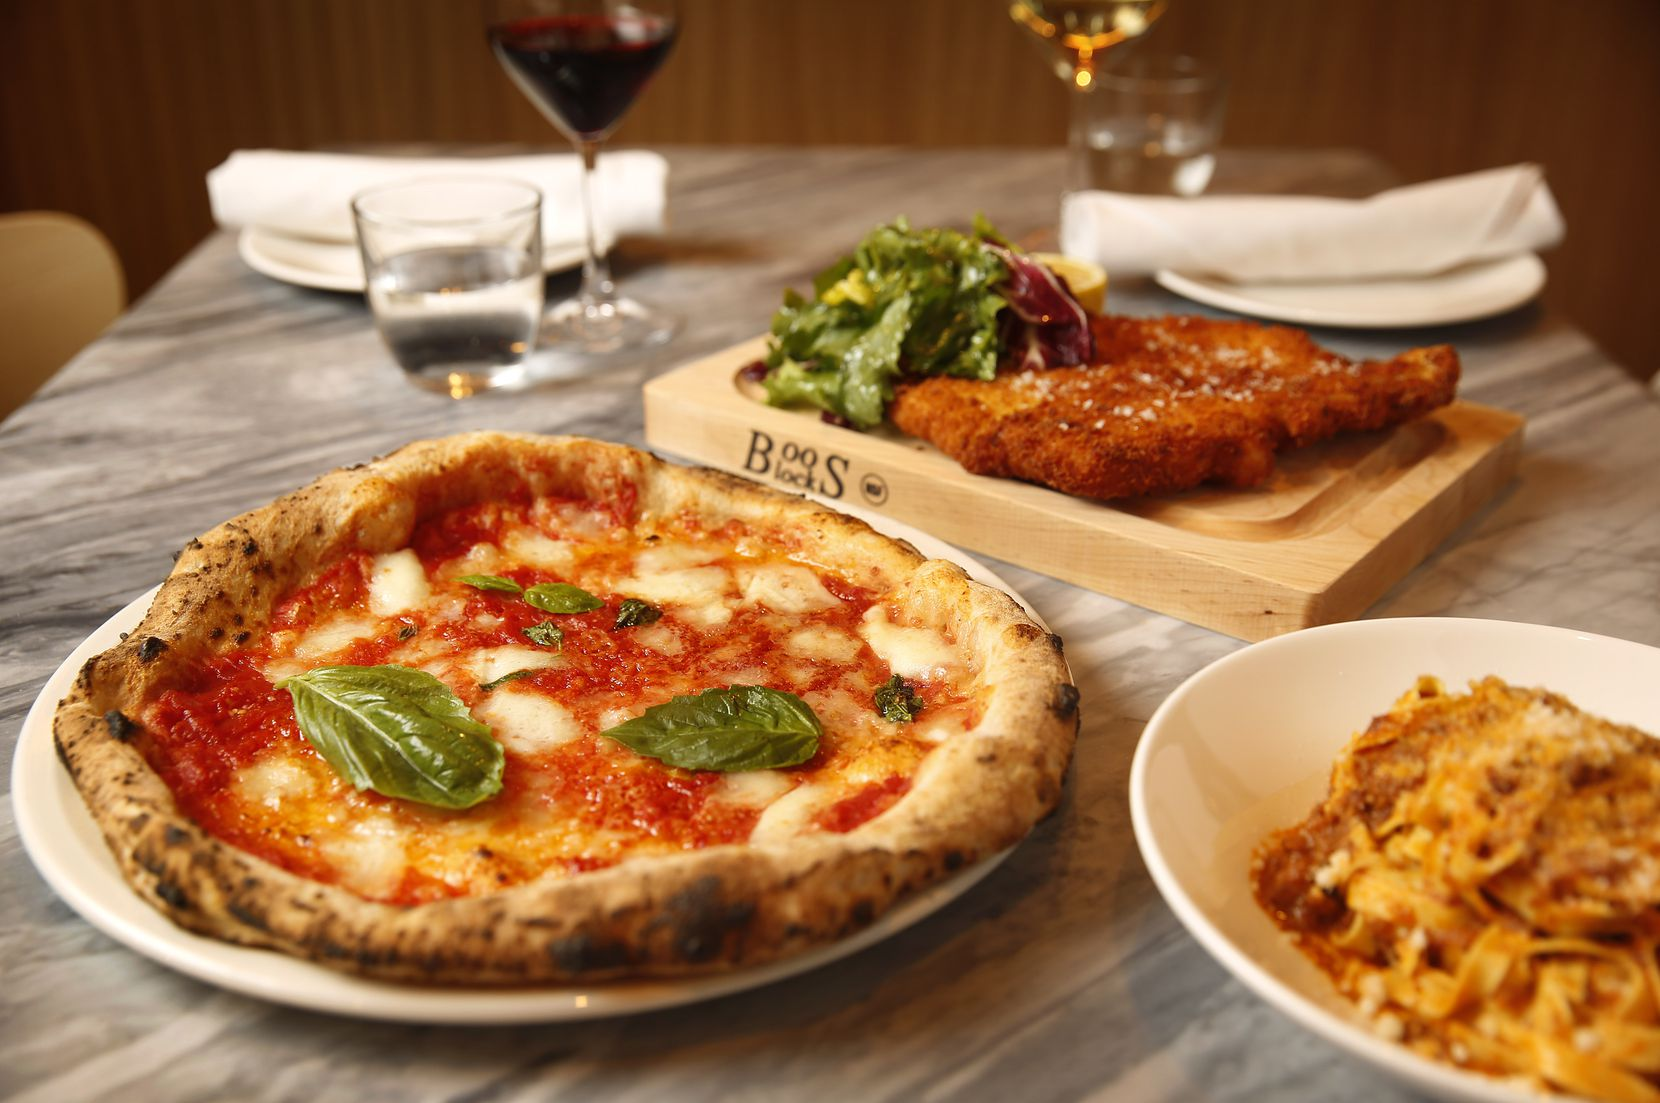 La Pizza & La Pasta is located on the second floor of NorthPark Center in Dallas and has a sizeable menu of pizzas and pastas.